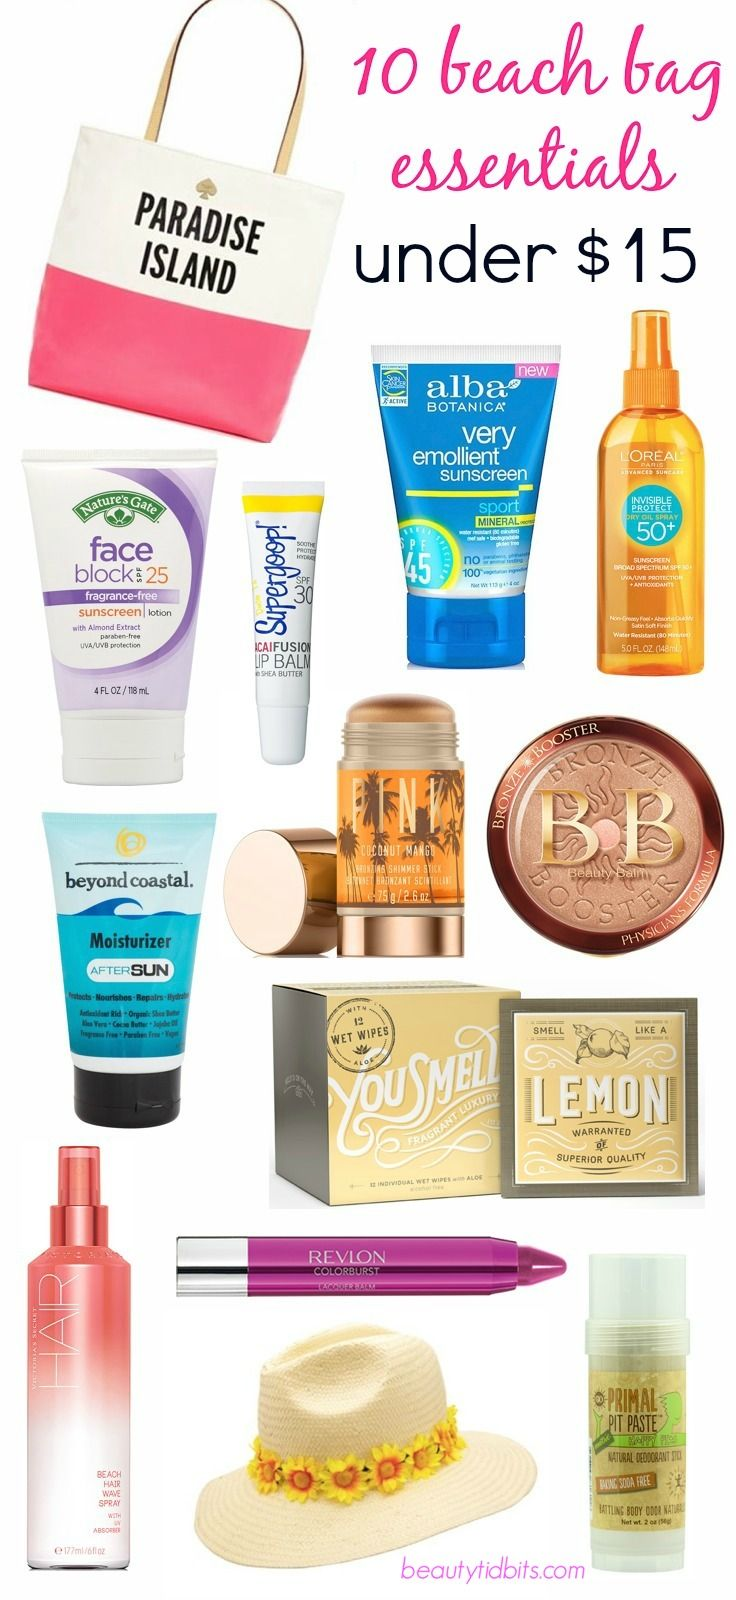 Heading off to a summer beach getaway? Toss these products into your beach bag for effortless beauty that endures the harshest elements of summer: sun, sand, saltwater and humidity...…and let you f...